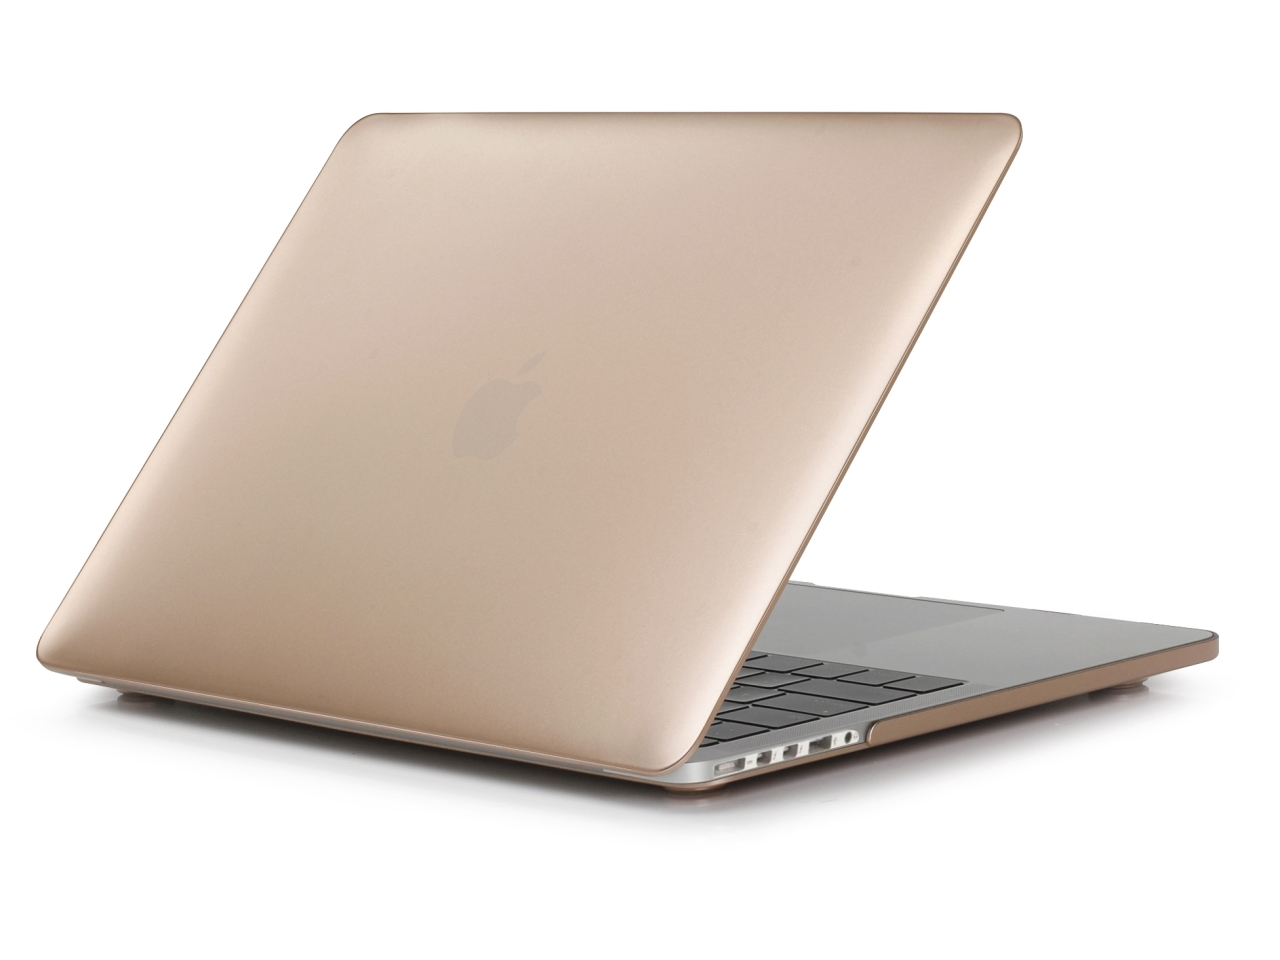 macbook pro retina 15 schutzh lle gold matt case. Black Bedroom Furniture Sets. Home Design Ideas